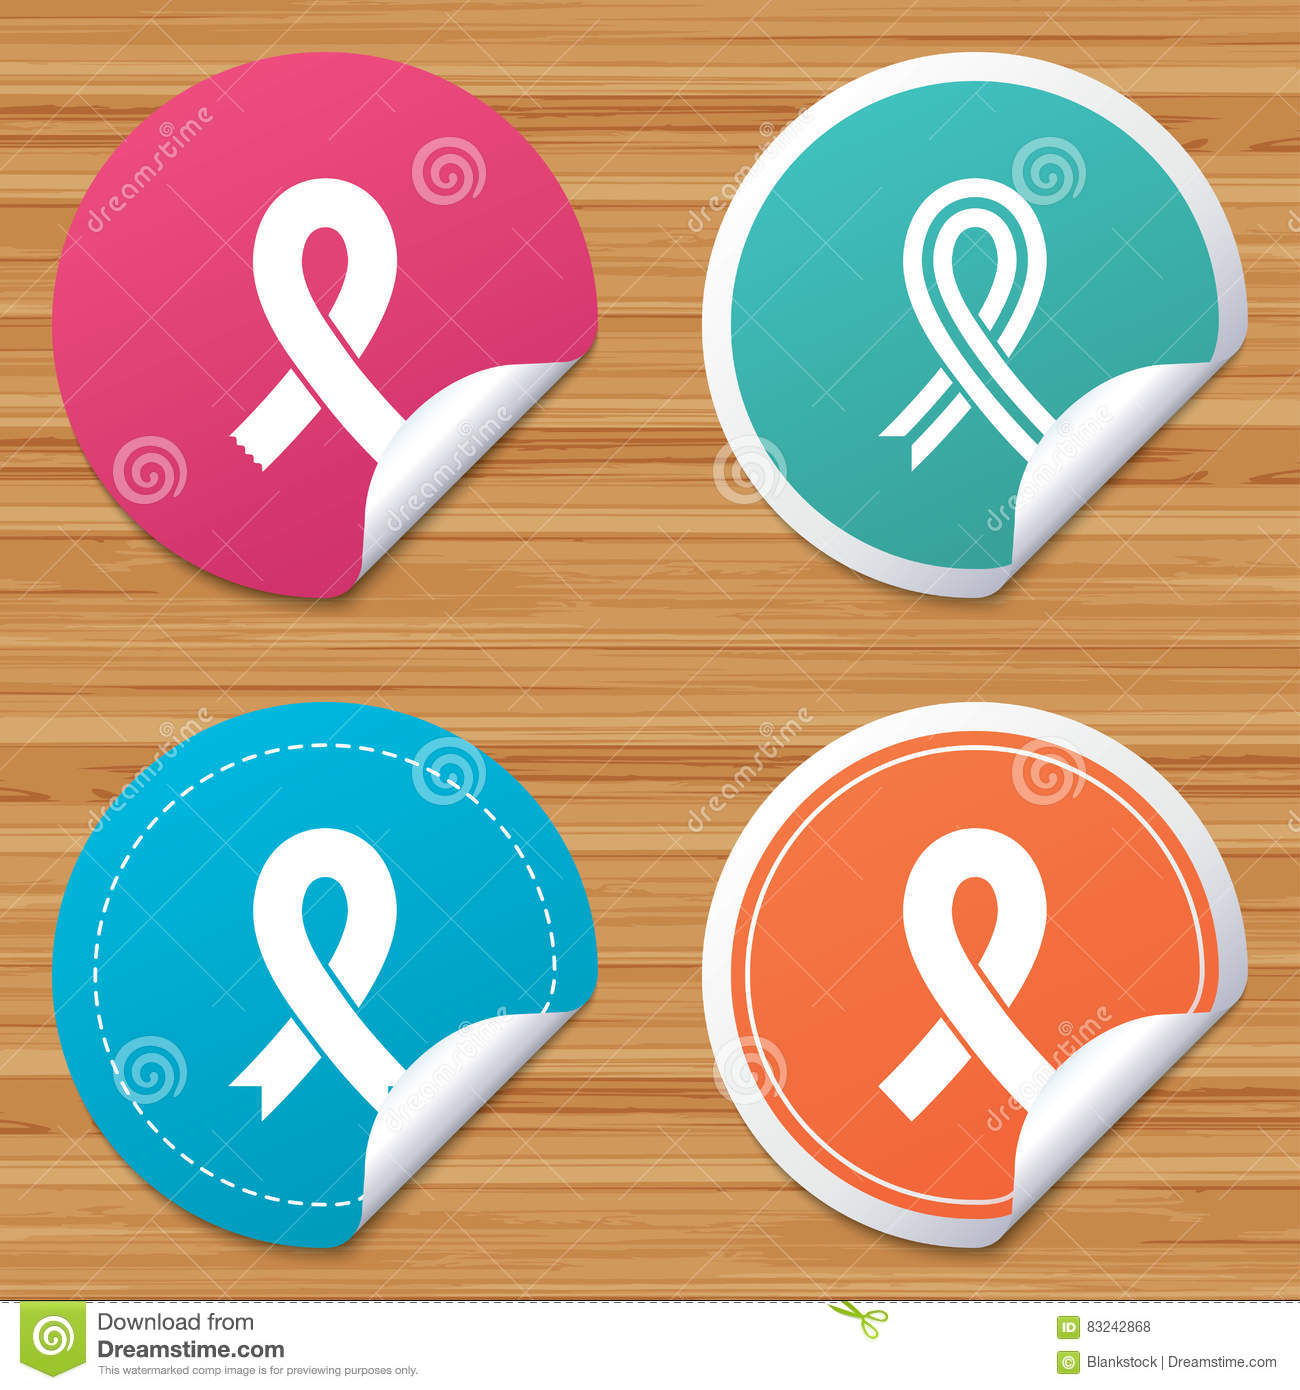 cdf33231fc9 Breast Cancer Awareness Icons. Ribbon Signs. Stock Vector ...